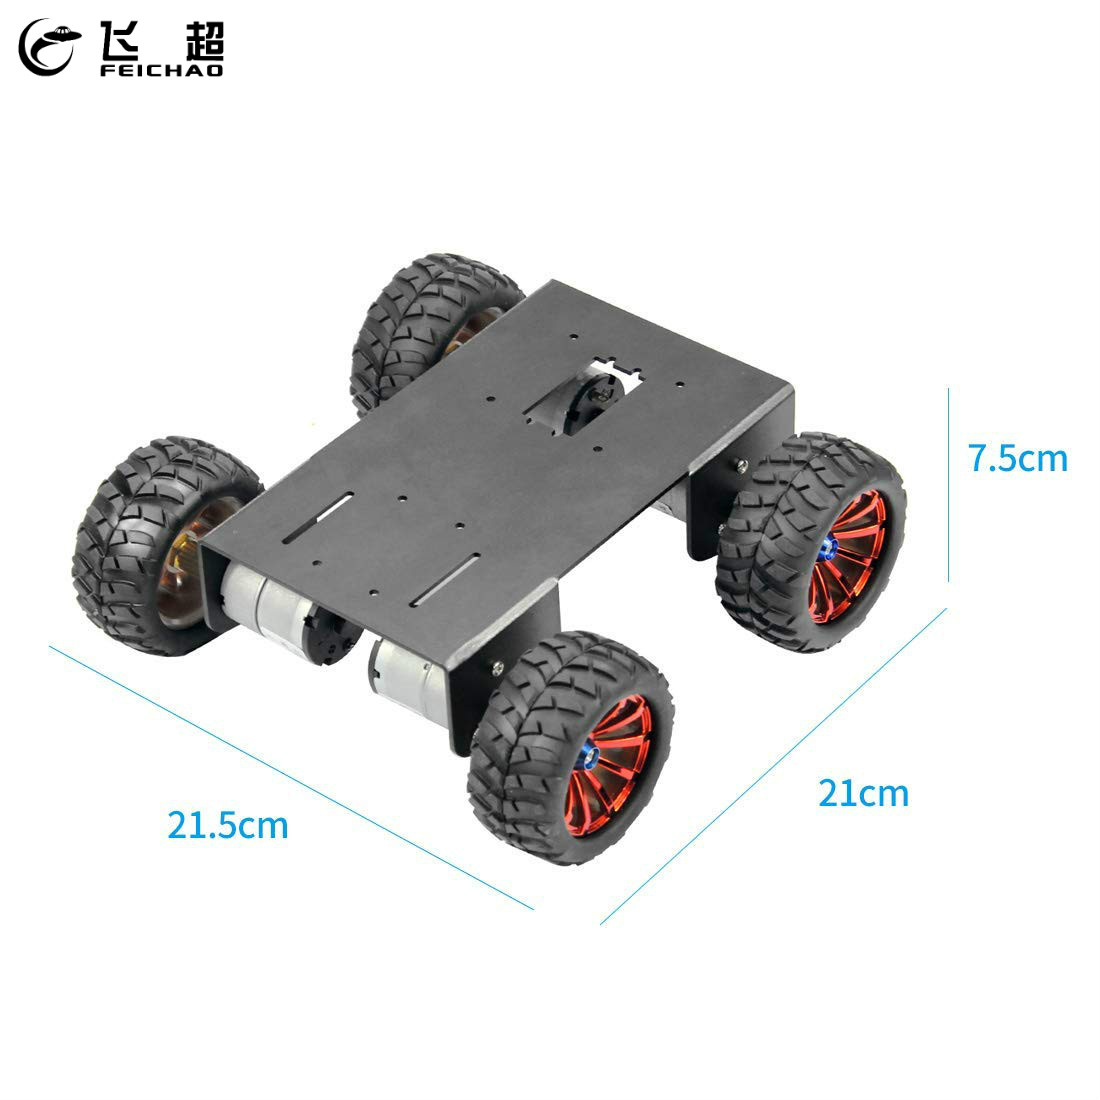 4WD Chassis with 72mm Diameter ABS Wheel 12V DC Metal Motor Accessory4WD Chassis with 72mm Diameter ABS Wheel 12V DC Metal Motor Accessory